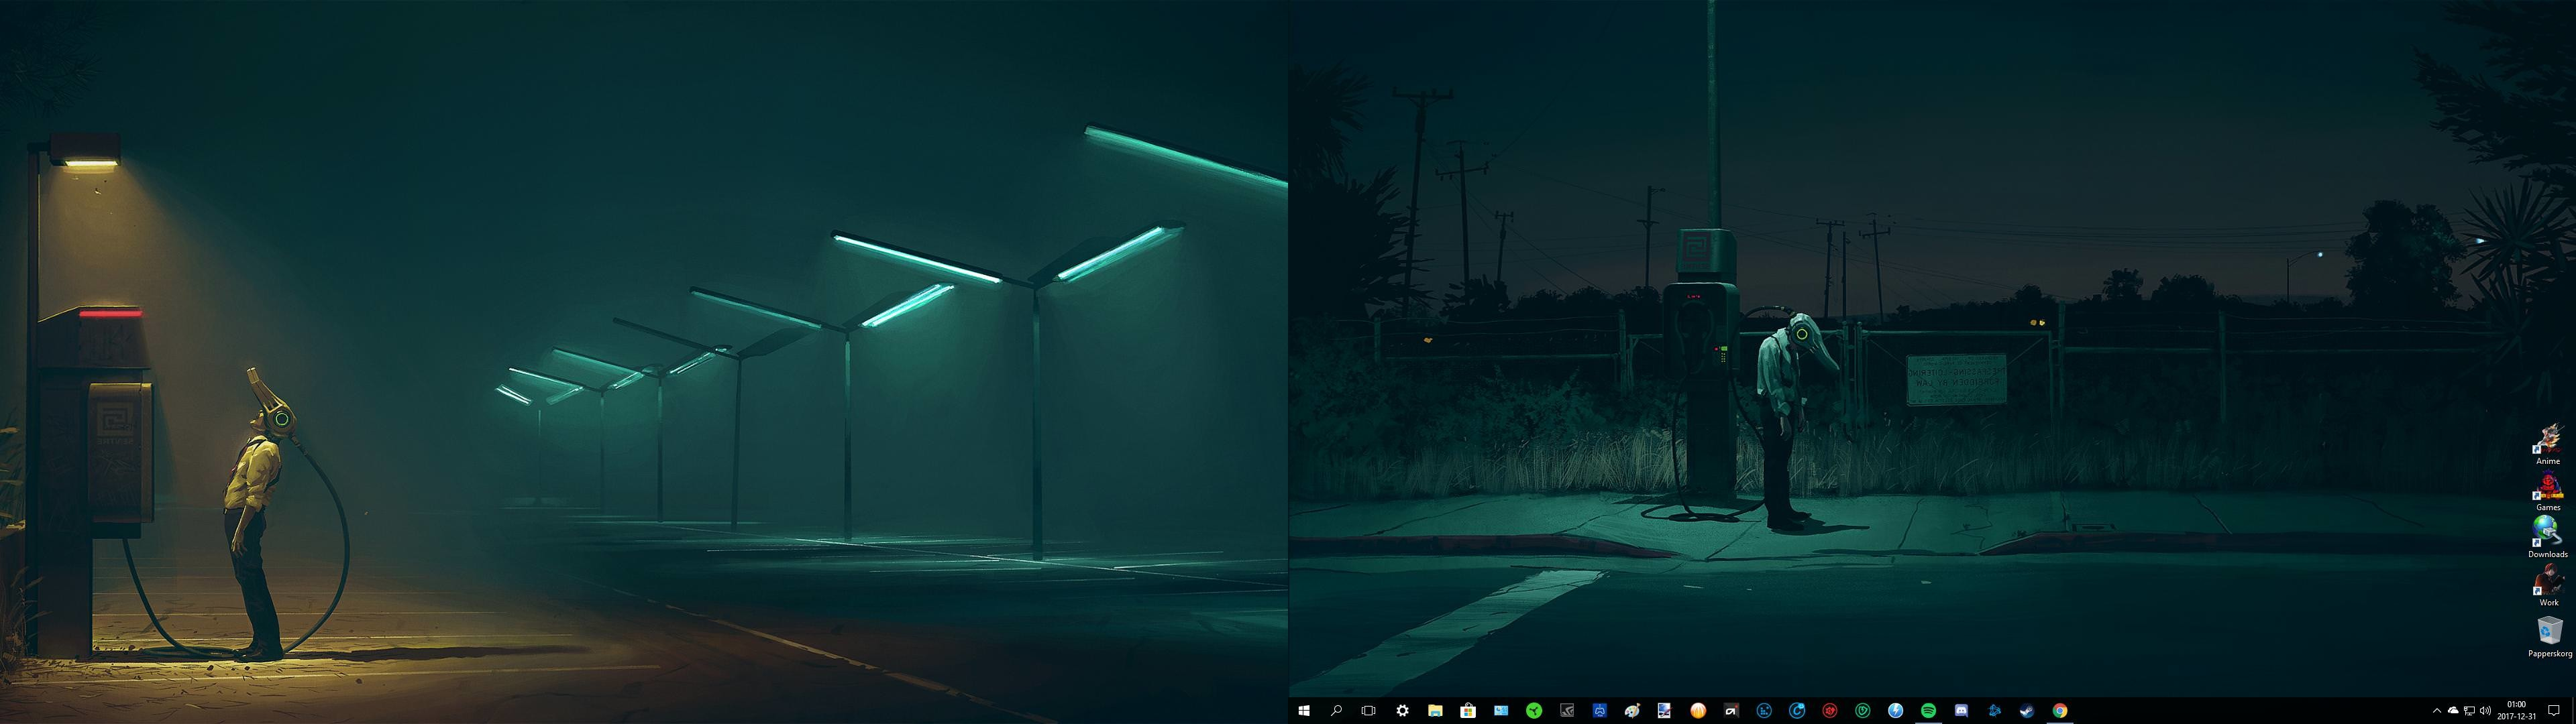 Windows 10 Dual Monitor Wallpapers 53 Background Pictures